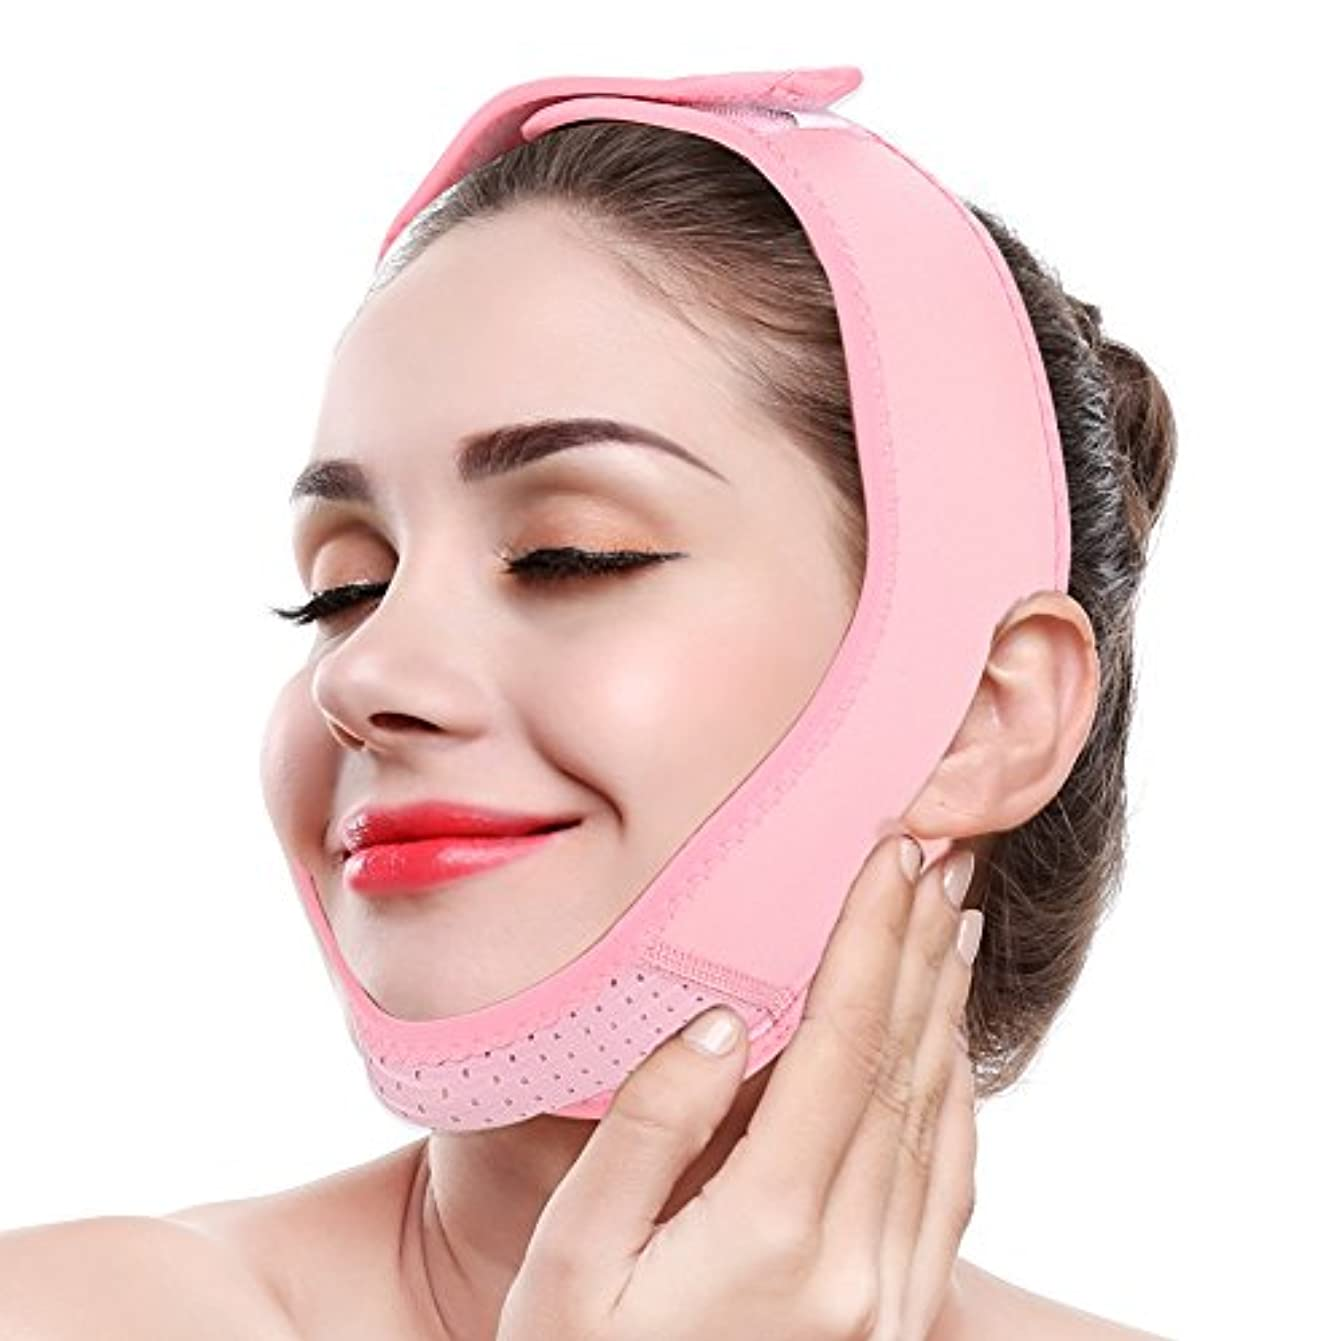 機関車コールド食い違いFacial Lifting Slimming Belt, V Line Mask Neck Compression Double Chin Strap Weight Loss Belts Skin Care Chin...